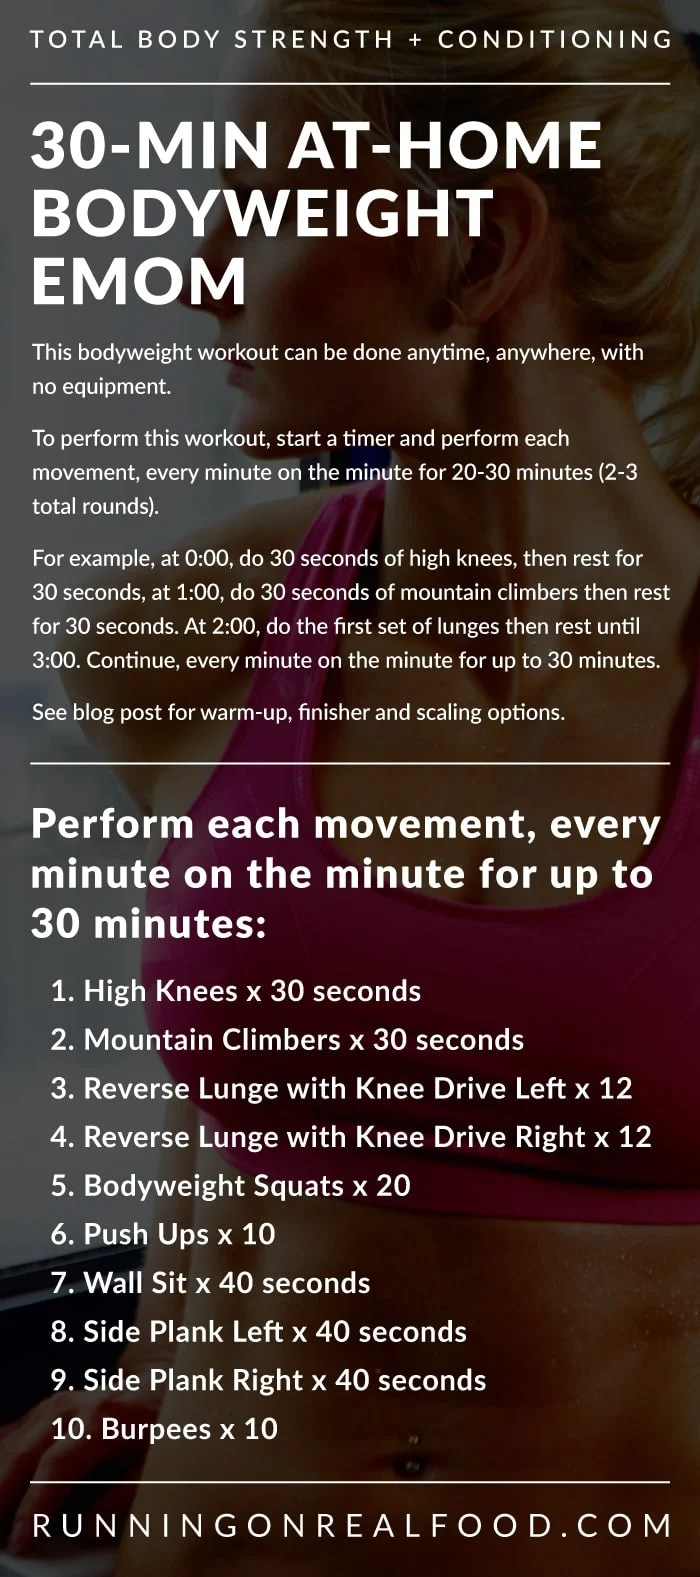 Text instructions for a 30-minute at-home bodyweight EMOM workout.